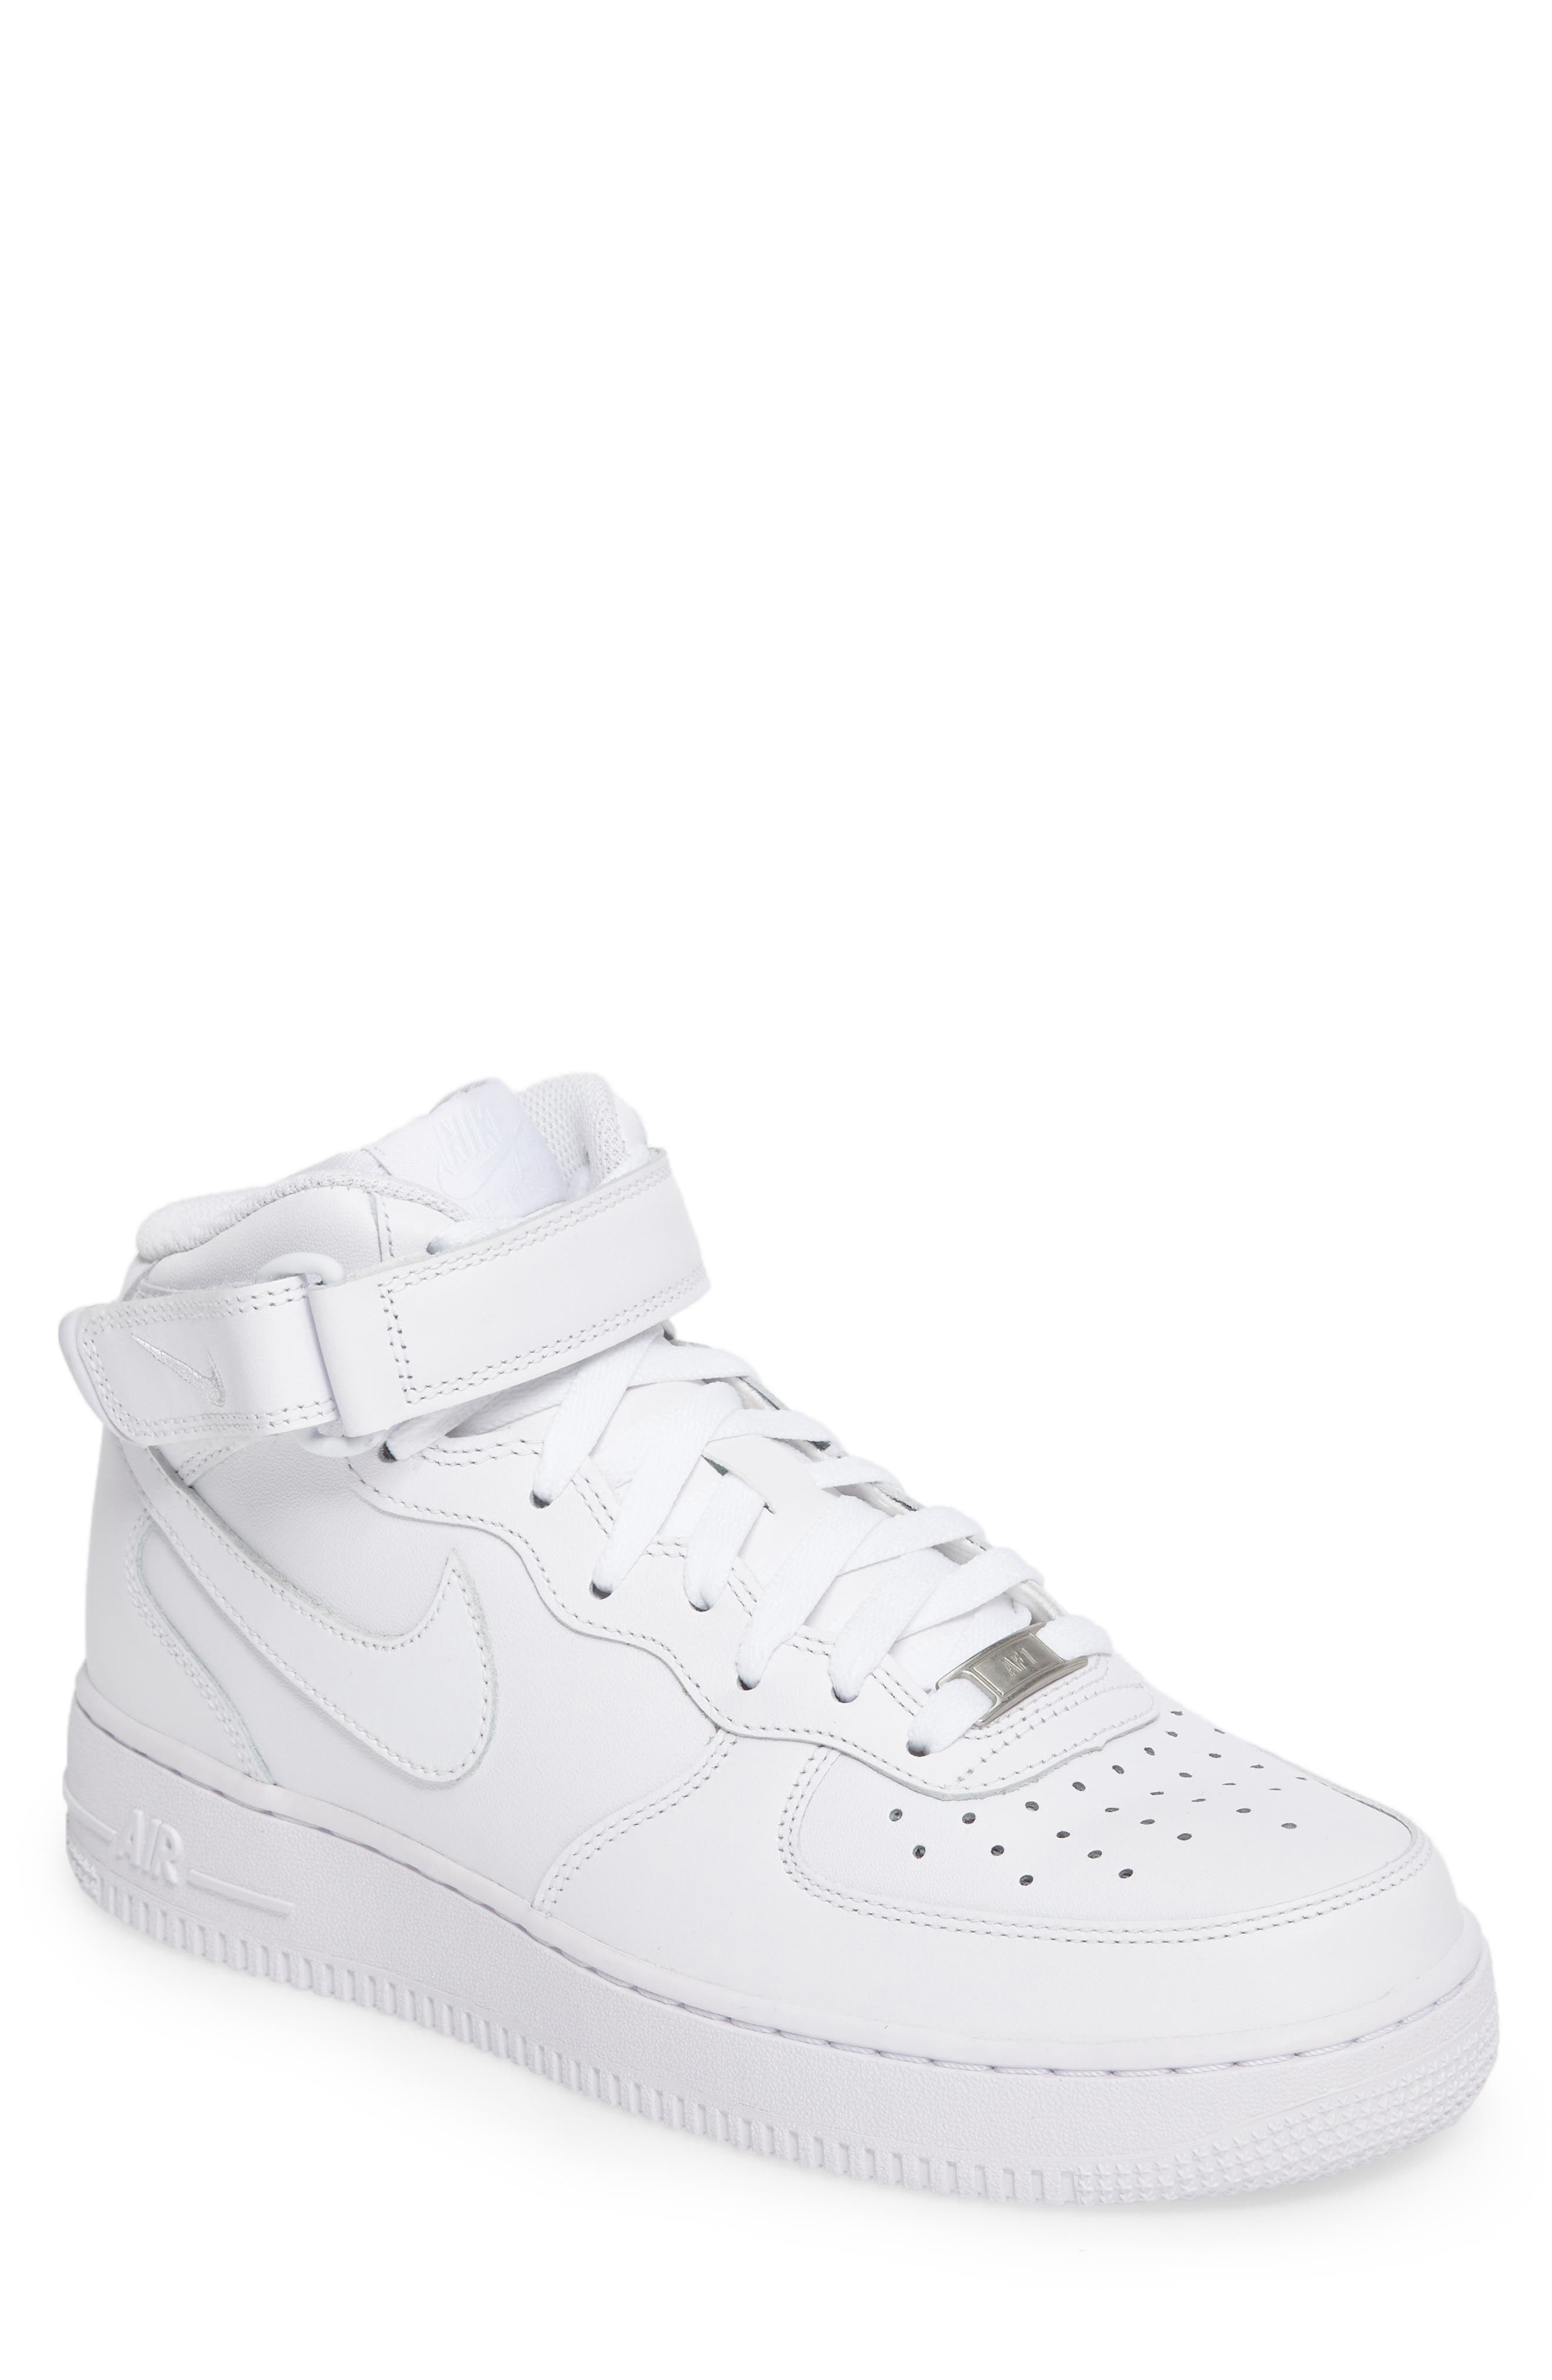 Air Force 1 Mid '07 Sneaker,                             Main thumbnail 1, color,                             White/ White